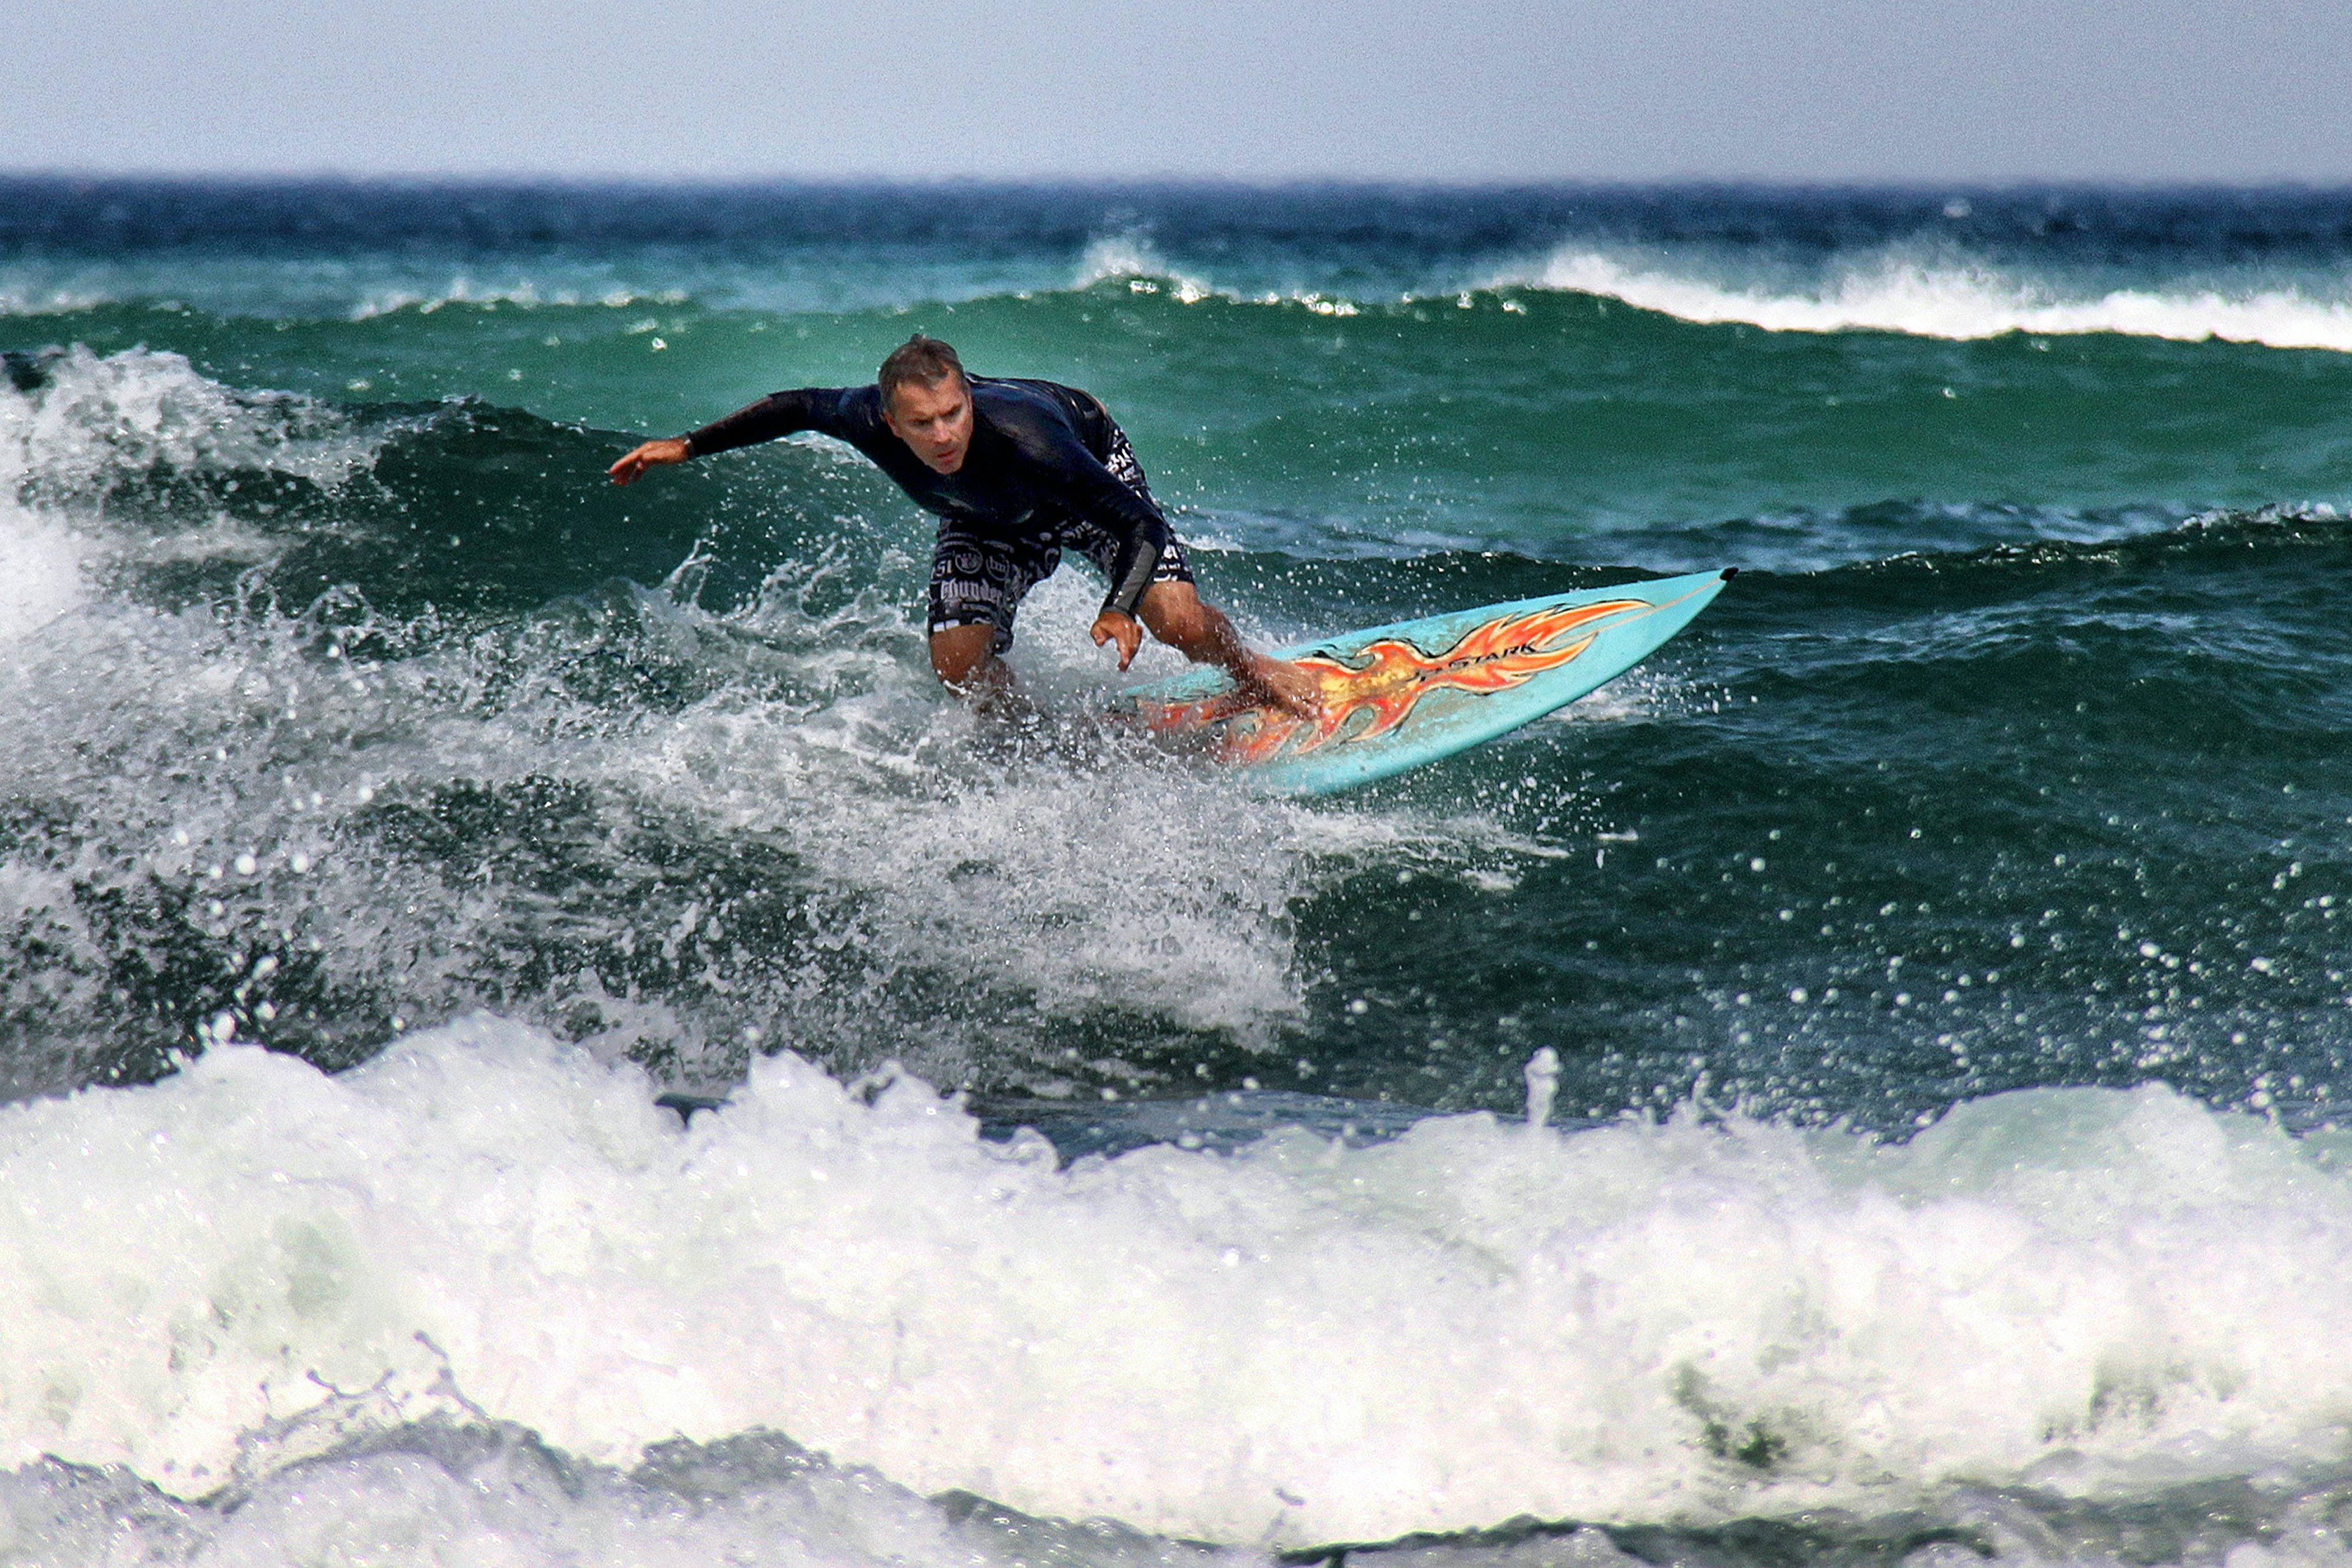 man riding a surfboard during daytime